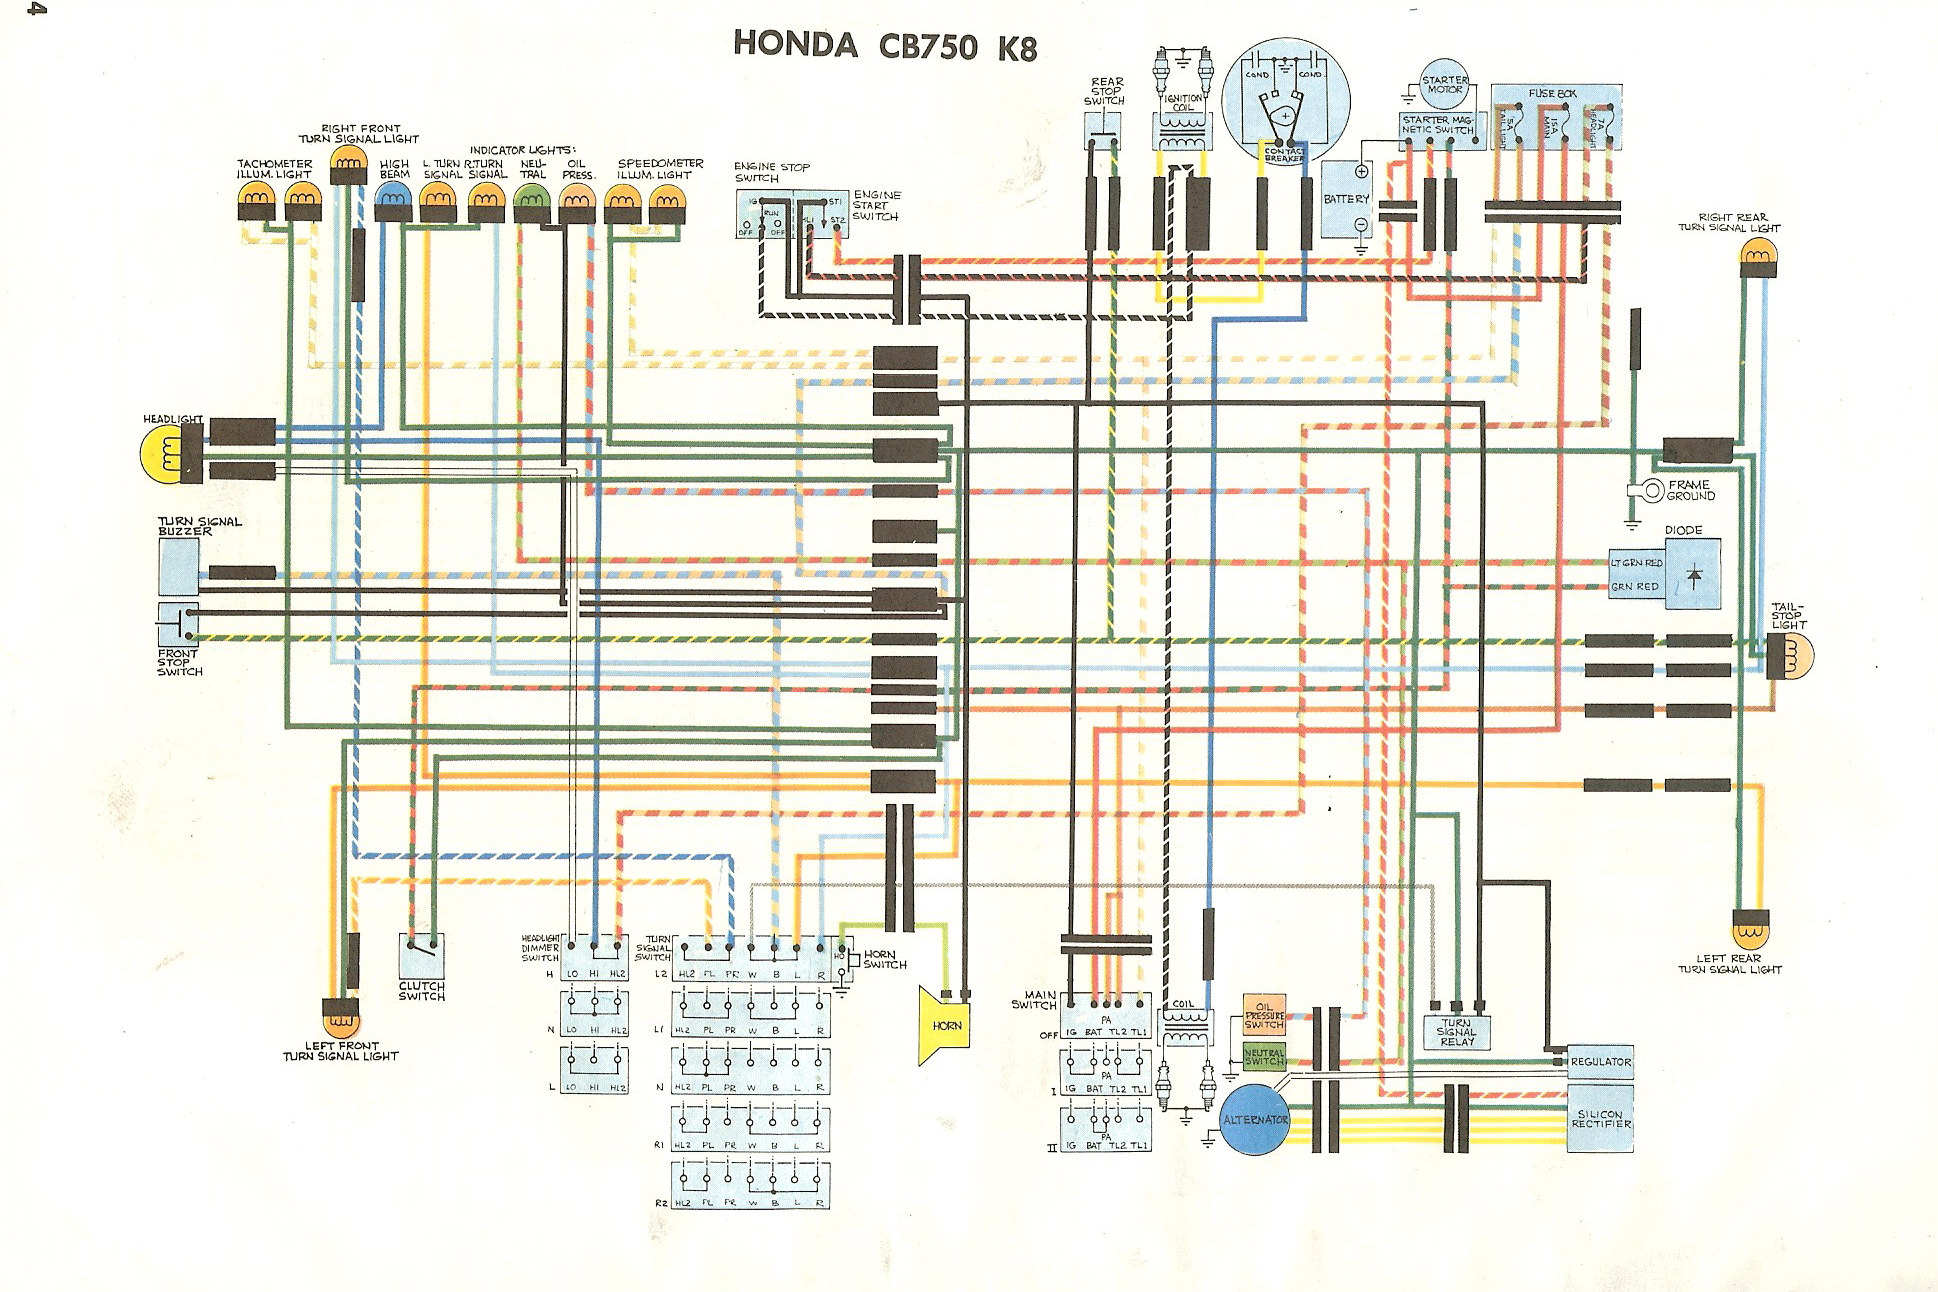 WD750K8 1978 honda cb750 wiring diagram honda cb 700 ignition wire diagram wiring diagram for a 1979 honda cb750f at soozxer.org